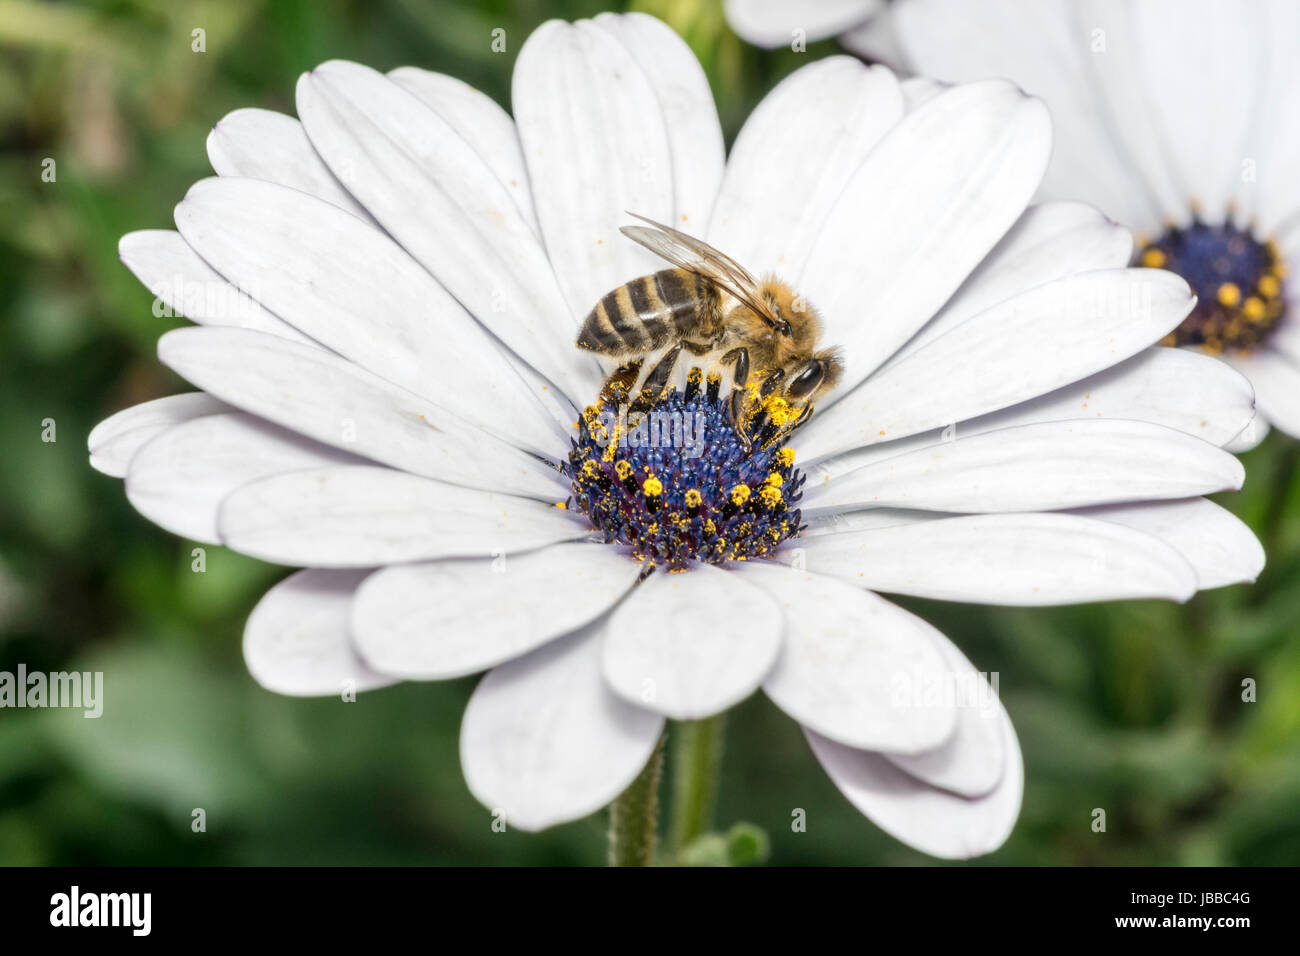 Bee On White Flower With Violet Stamen And Pollen Stock Photo